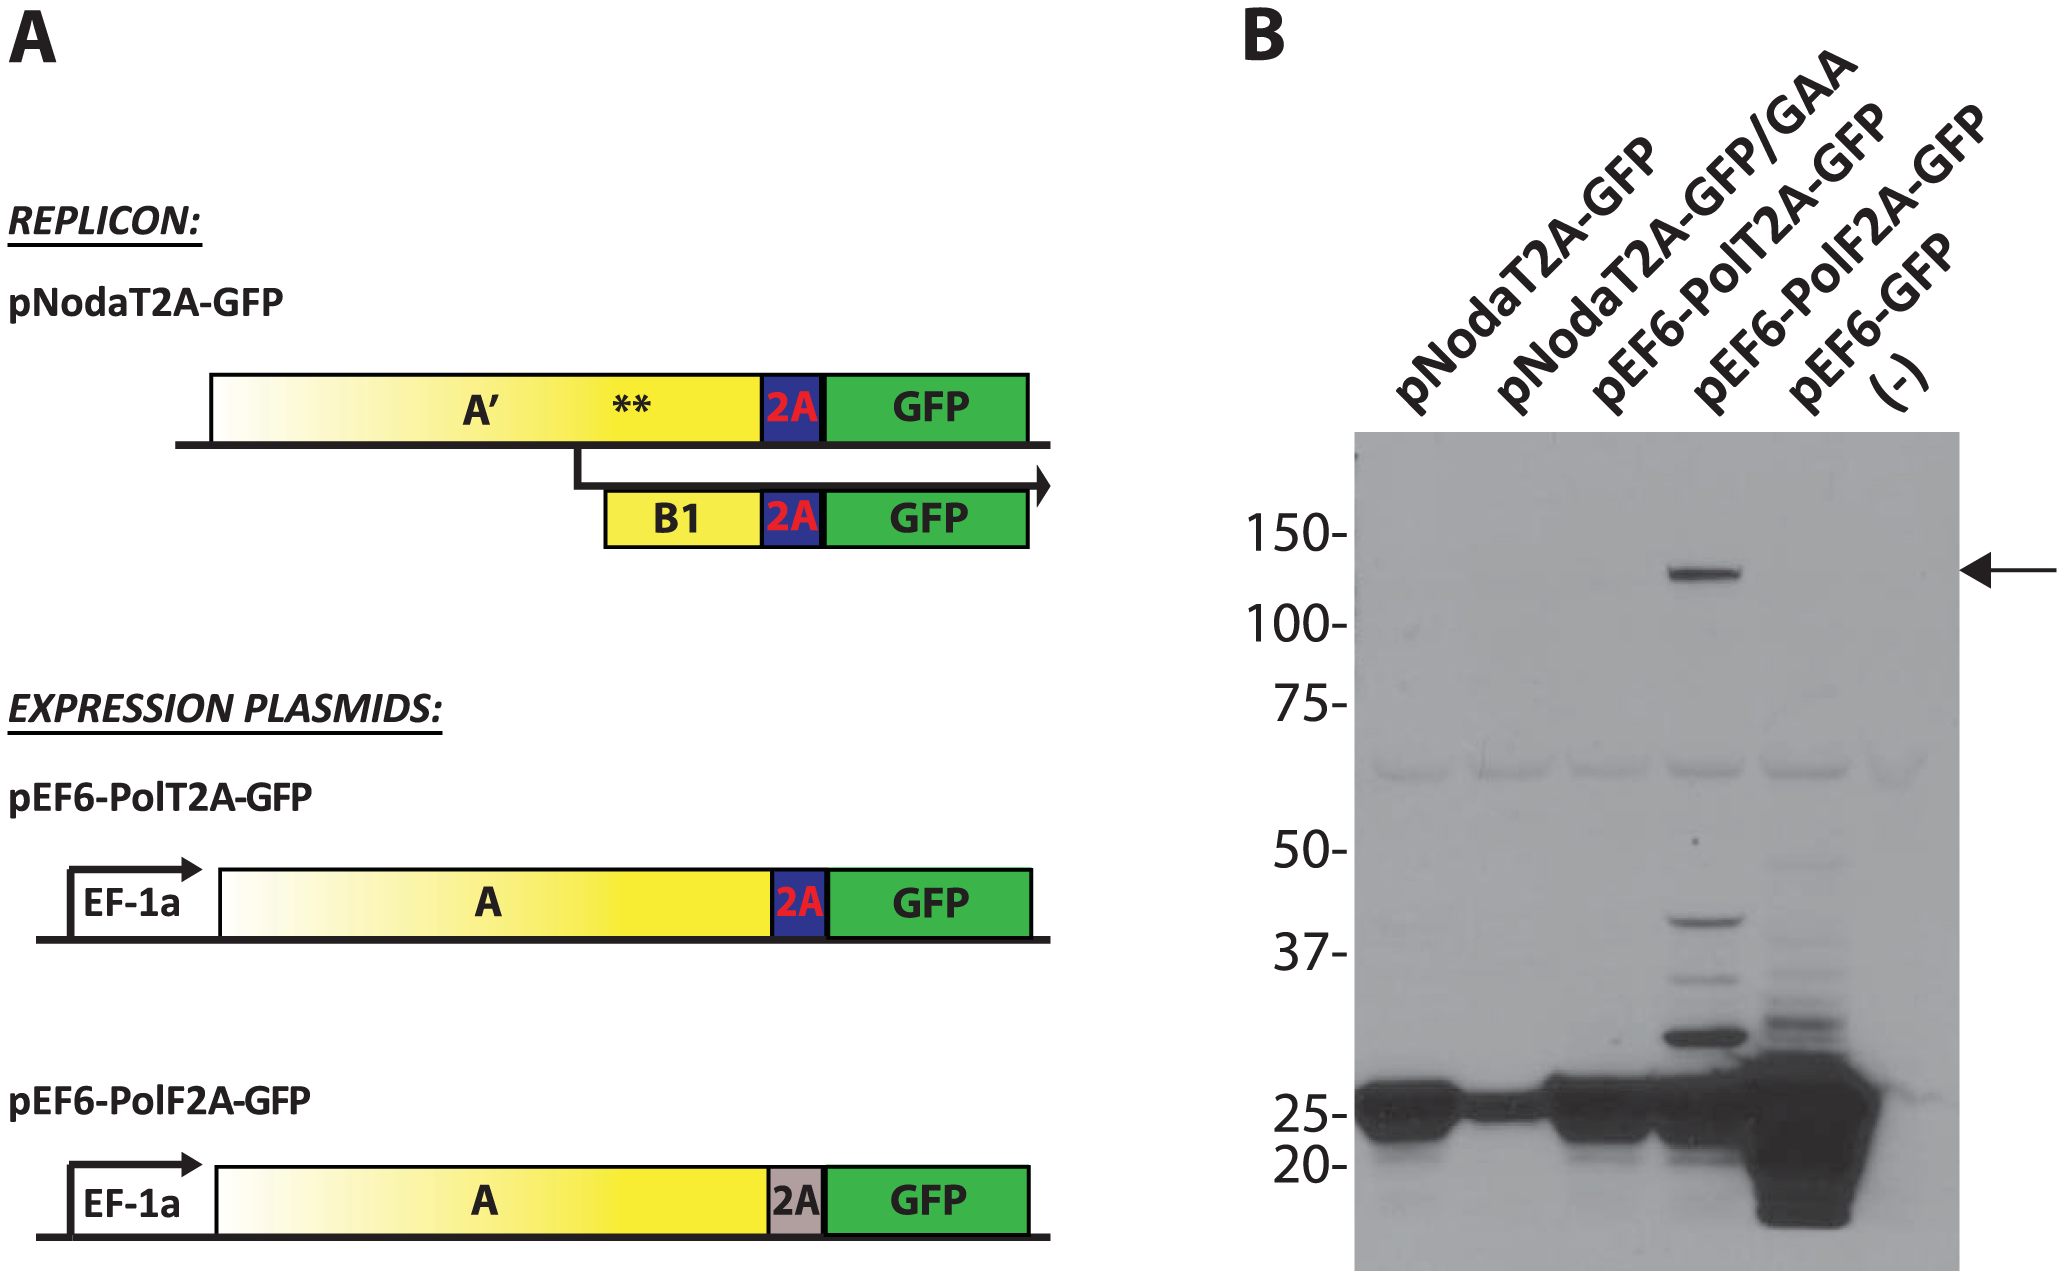 Processing of the GFP transgene by 2A cleavage peptides.